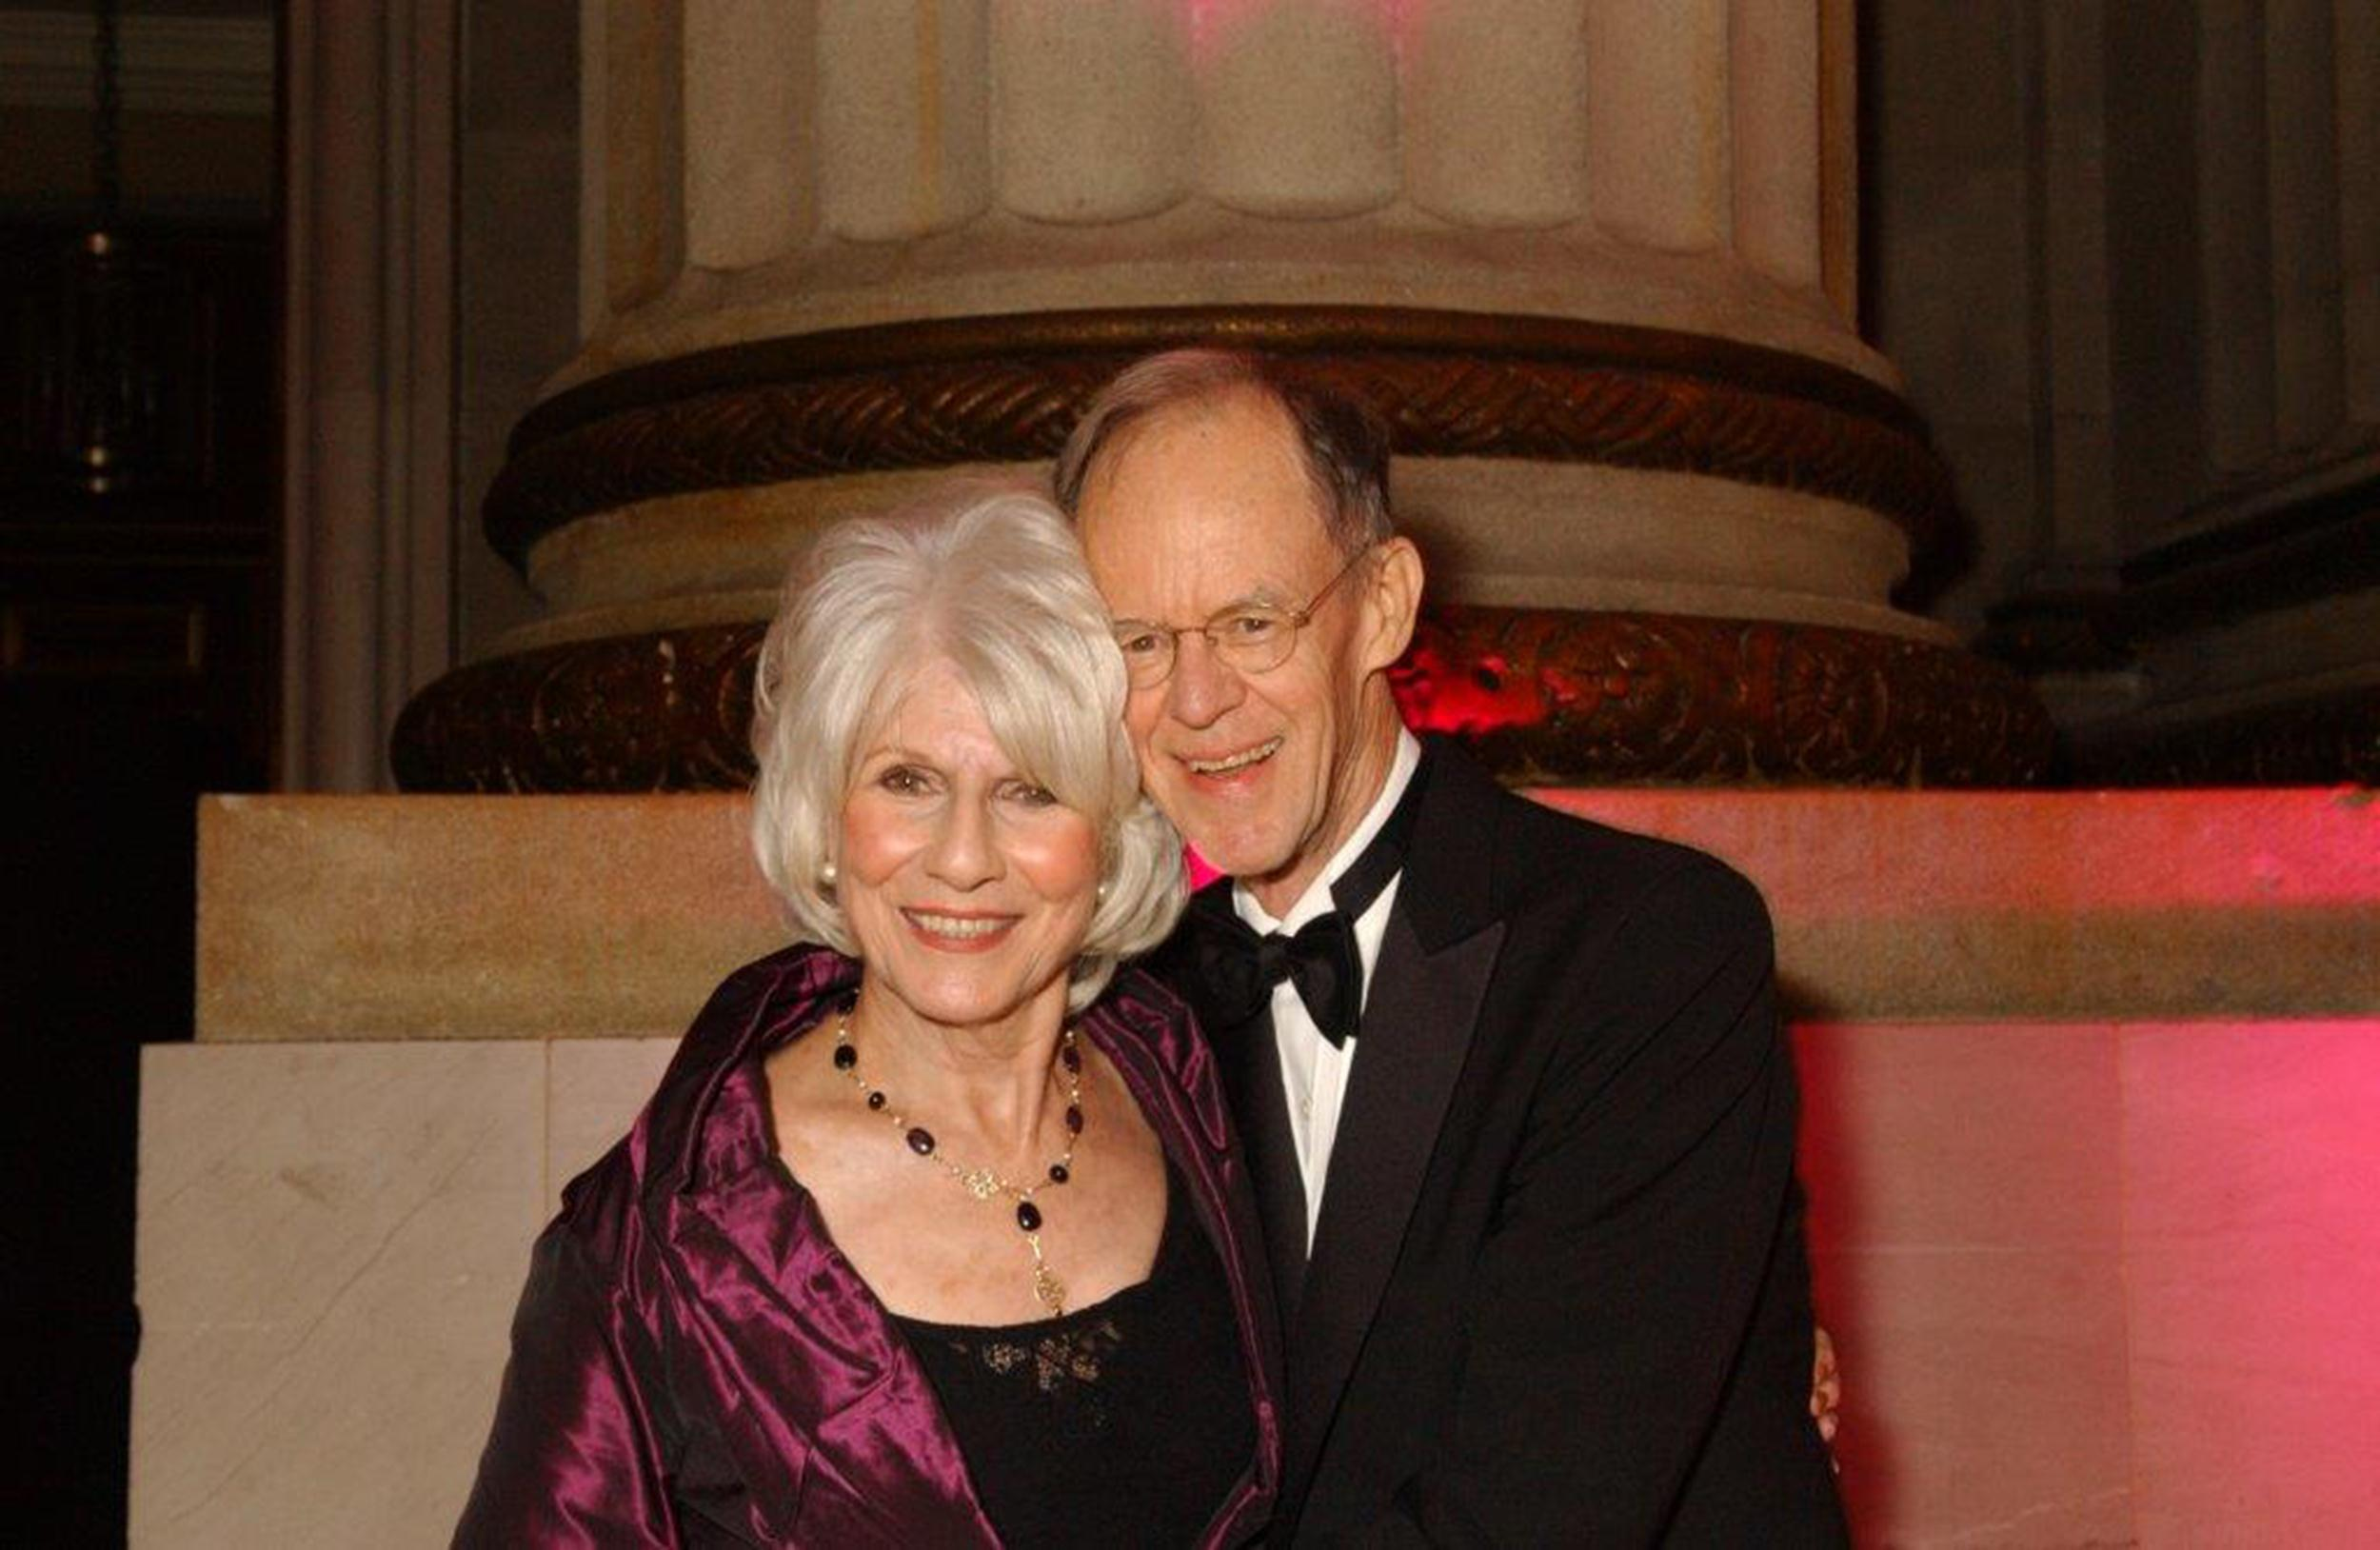 Image: Diane and John Rehm